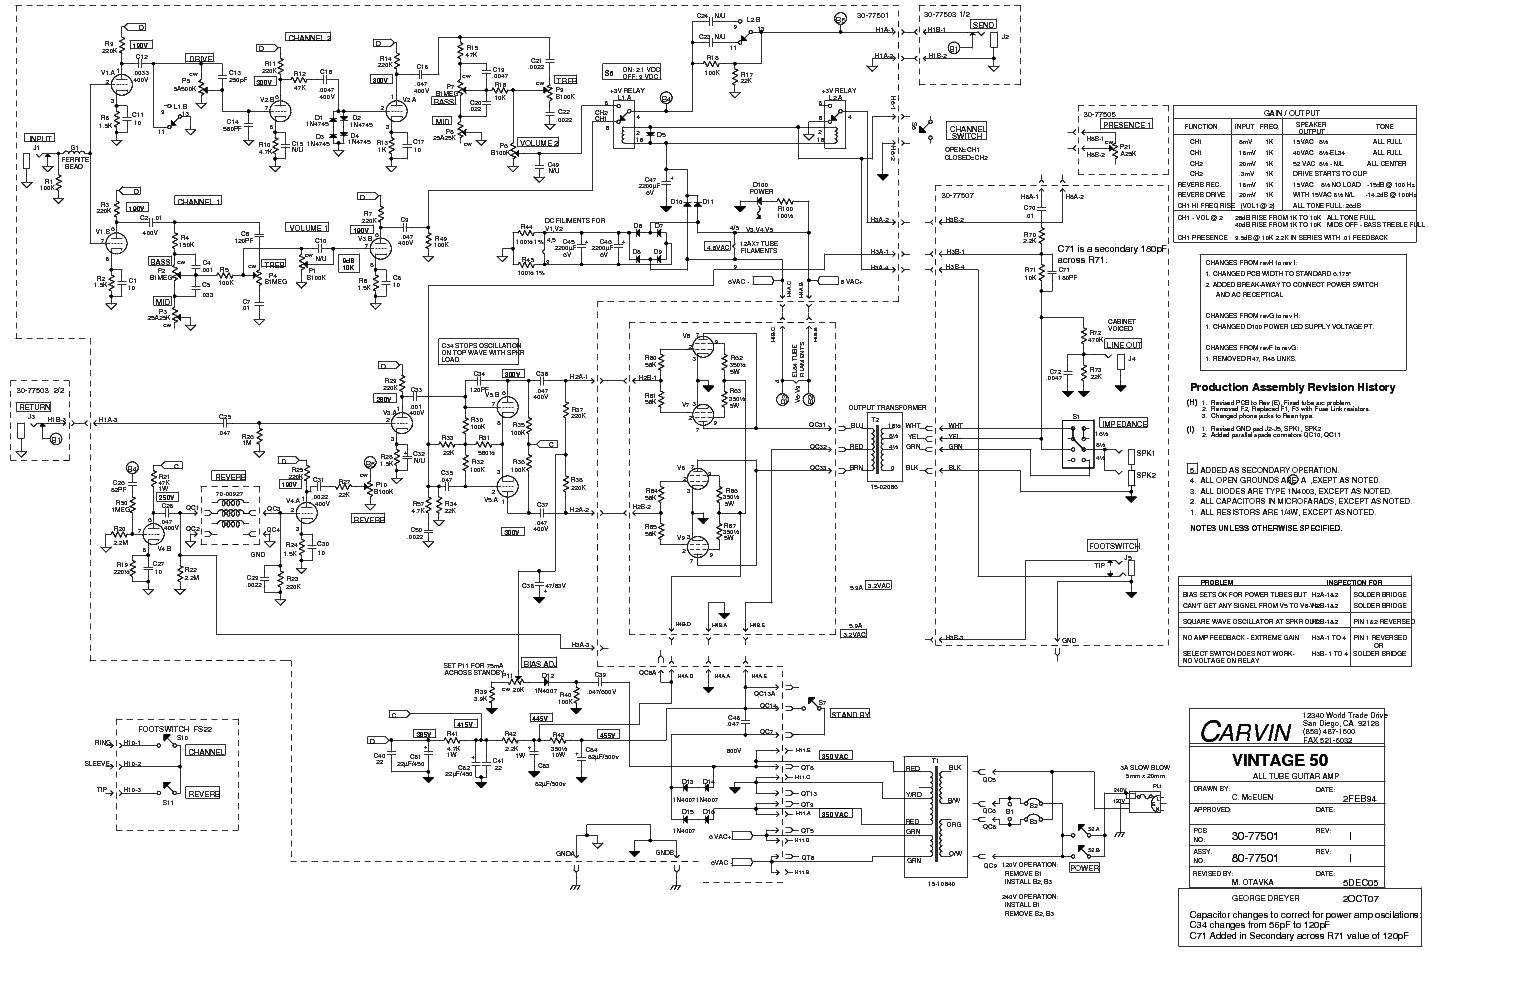 hight resolution of carvin legacy schematic wiring diagram carvin legacy schematic